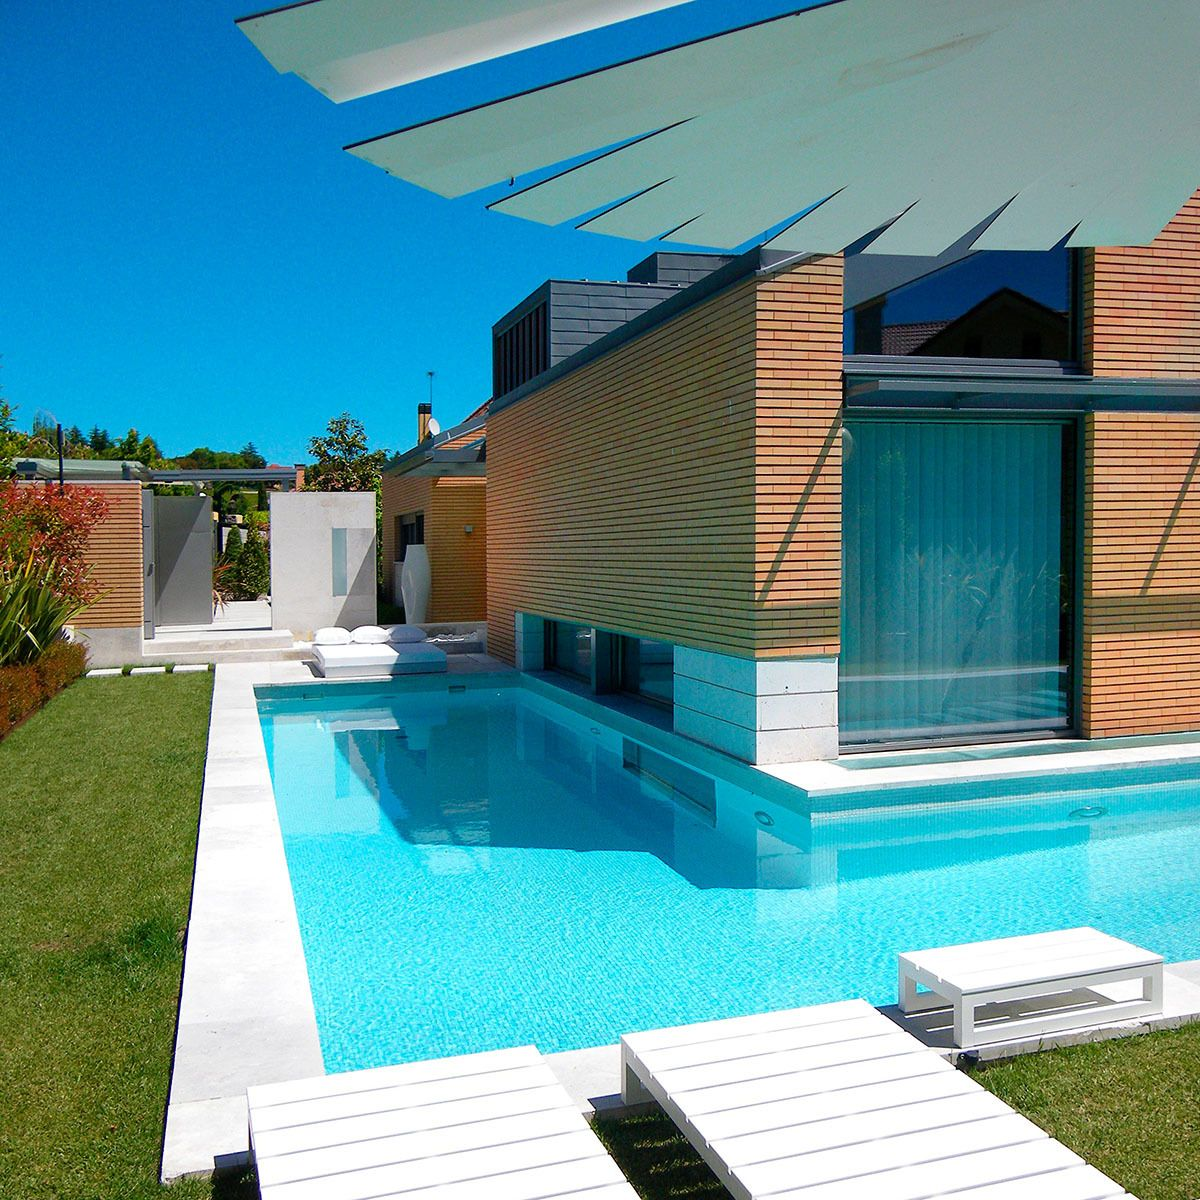 Marvelous Bioclimatic House. El Encinar. Madrid. | SHIFTVIEW Architecture | Archinect